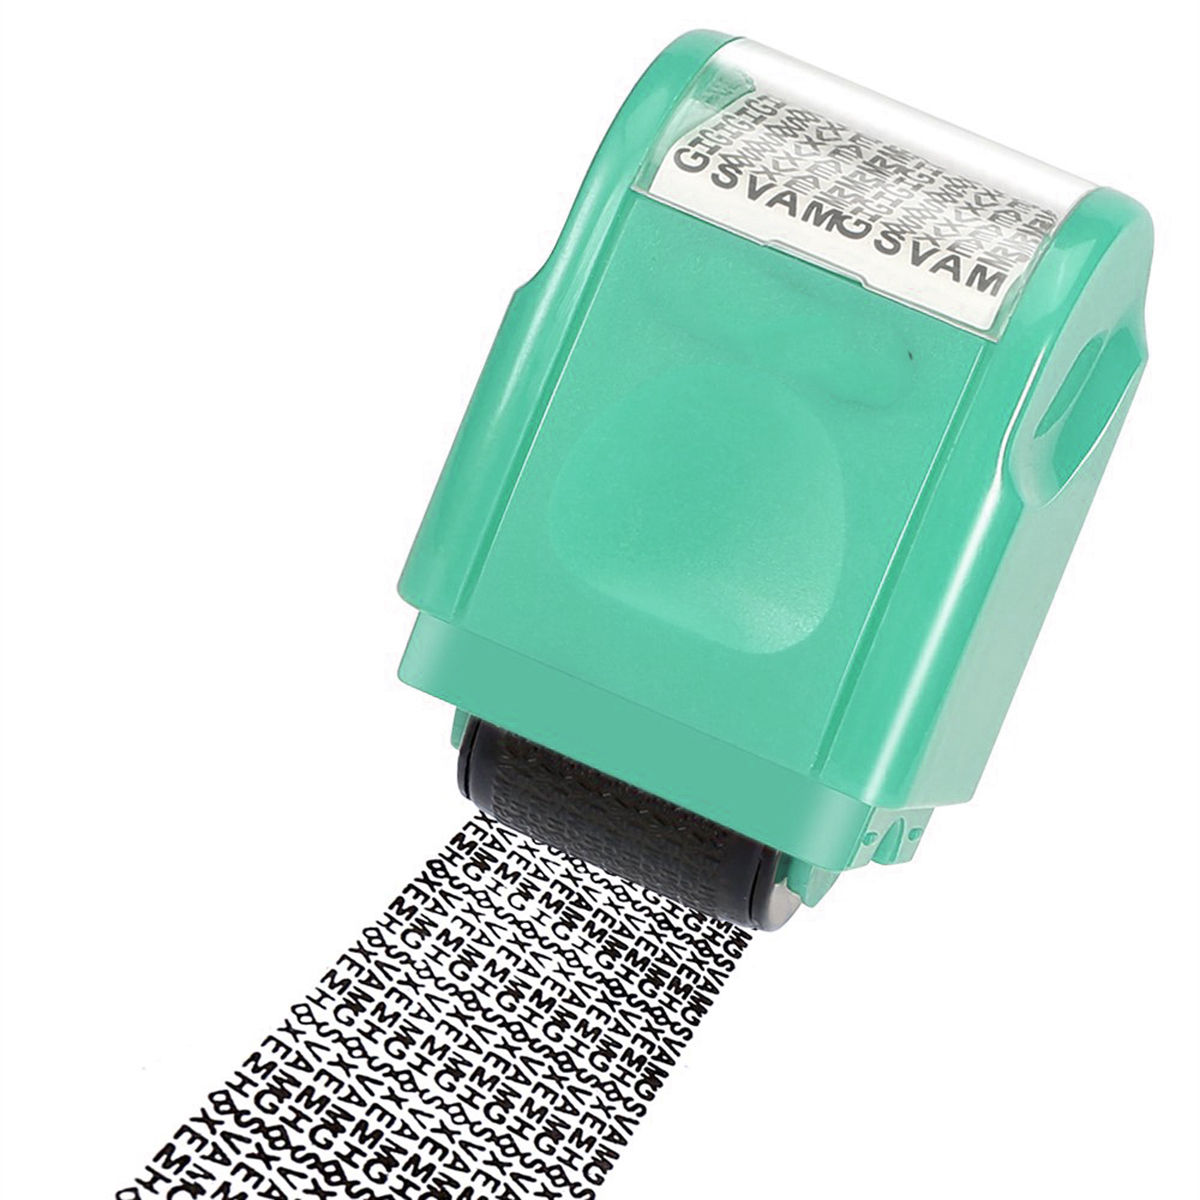 SOONHUA Creative Identity Privacy Protection Roller Stamp Information Coverage Data Protector Messy Code Roller Stamp Green